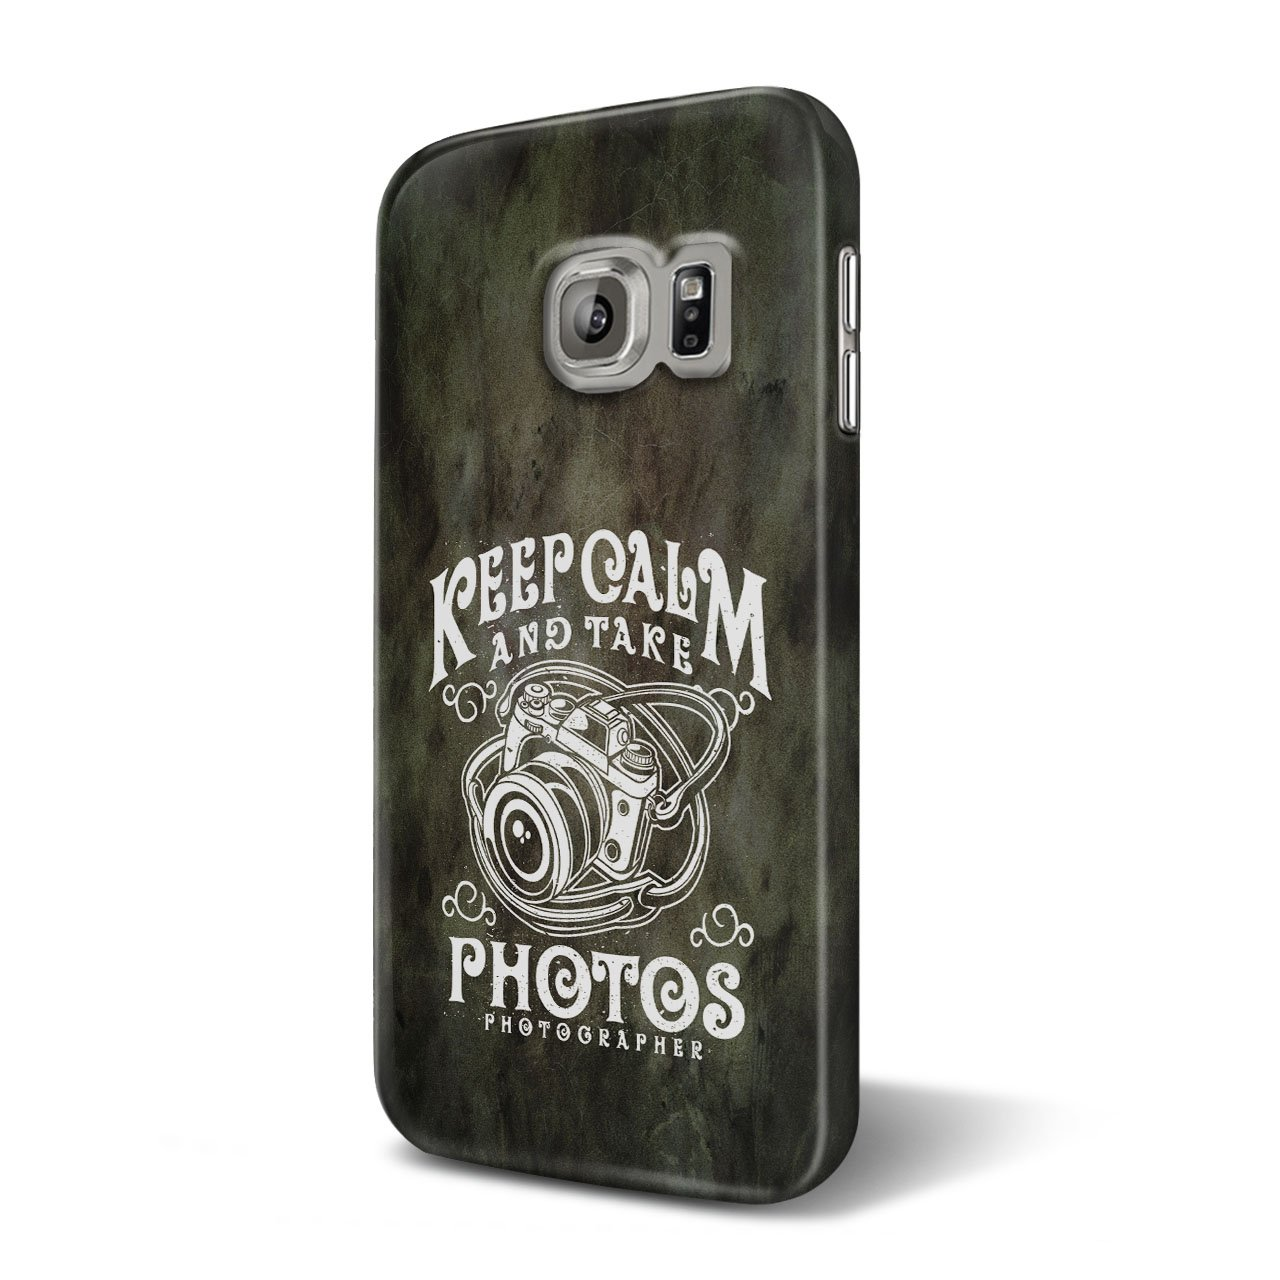 b5e01694c61 Amazon.com: Calm Photographer Fashion 3D Samsung Galaxy S6 Case | Wellcoda:  Cell Phones & Accessories